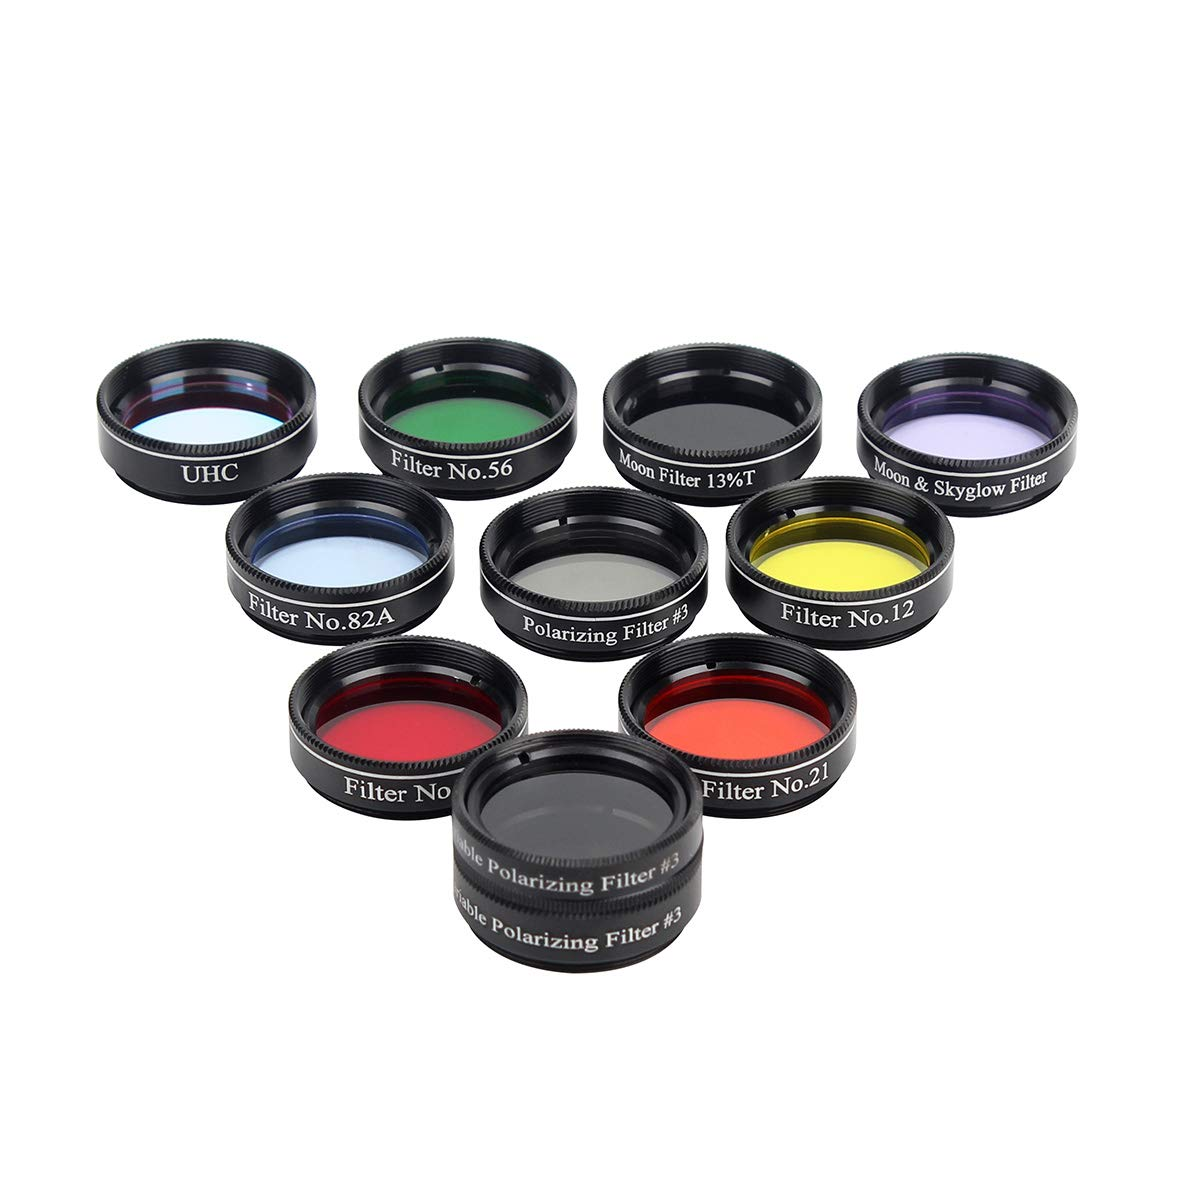 Gosky Telescope 1.25inch 10 Filters Set-5 Plantary Color Filter, Crystal Moon Filter, Variable Polarizing Filter, UHC Filter,Moon 13% Filter for 1.25inch Telescope Eyepieces by Gosky